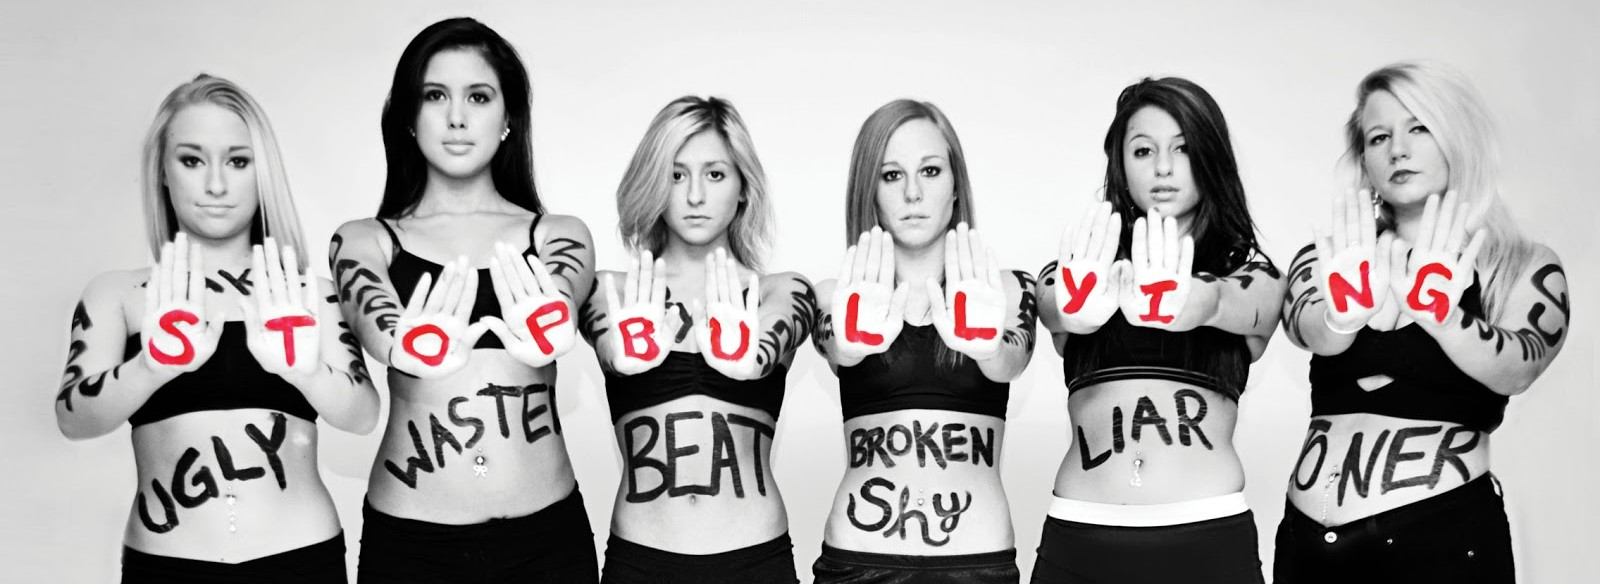 Stop-Bullying-Girls-with-words-written-all-over-bodies-Jan-12-p112-e1515259723952